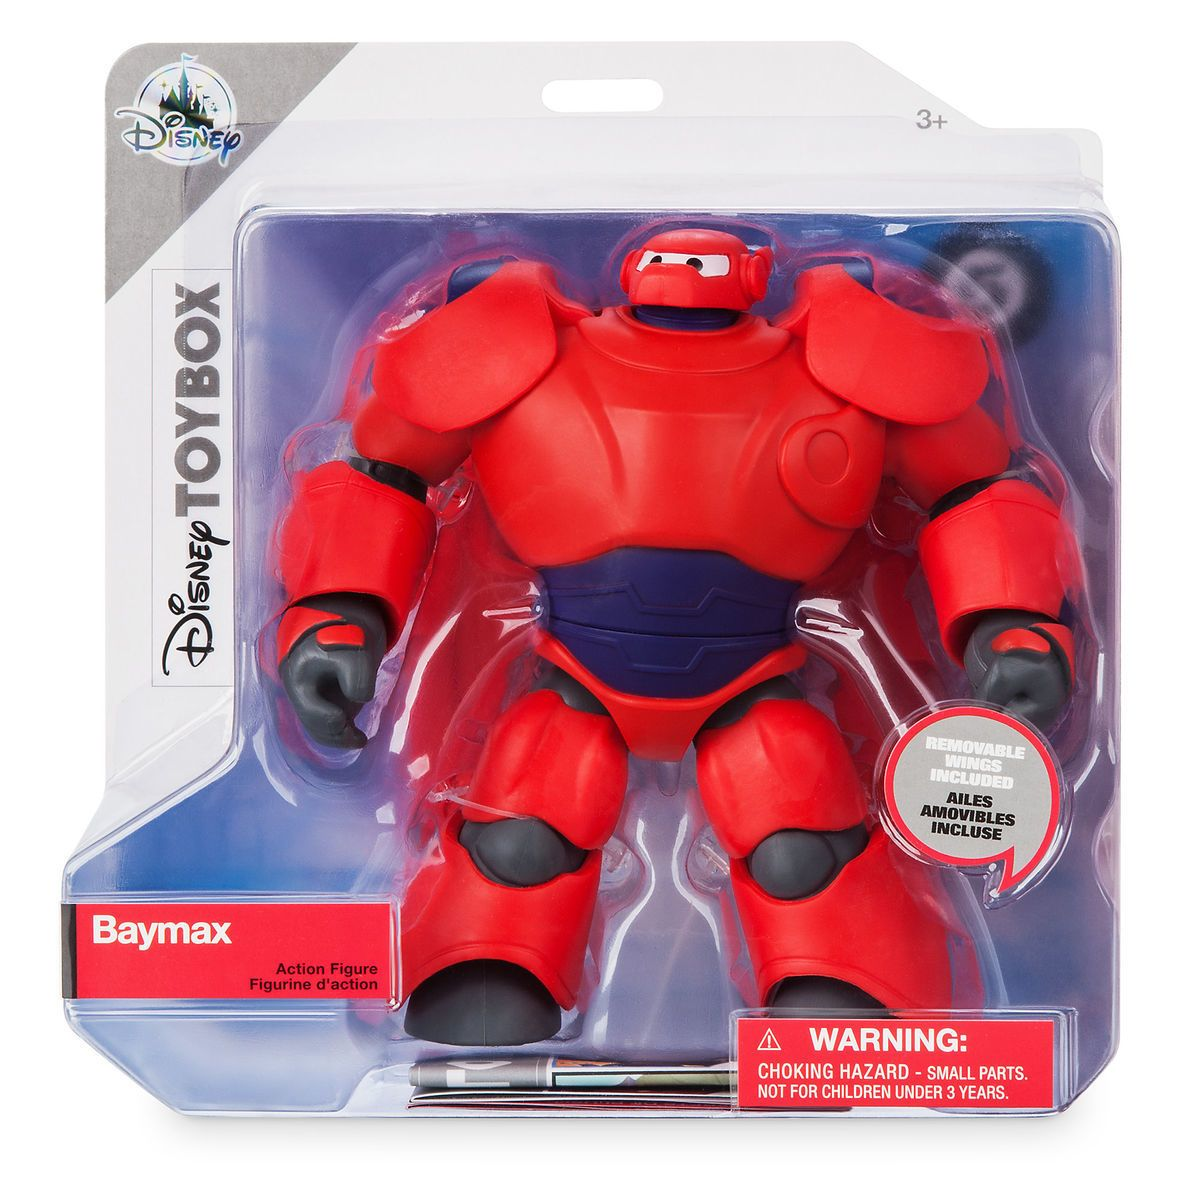 Disney Big Hero 6 Baymax Action Figure Toybox New with Box